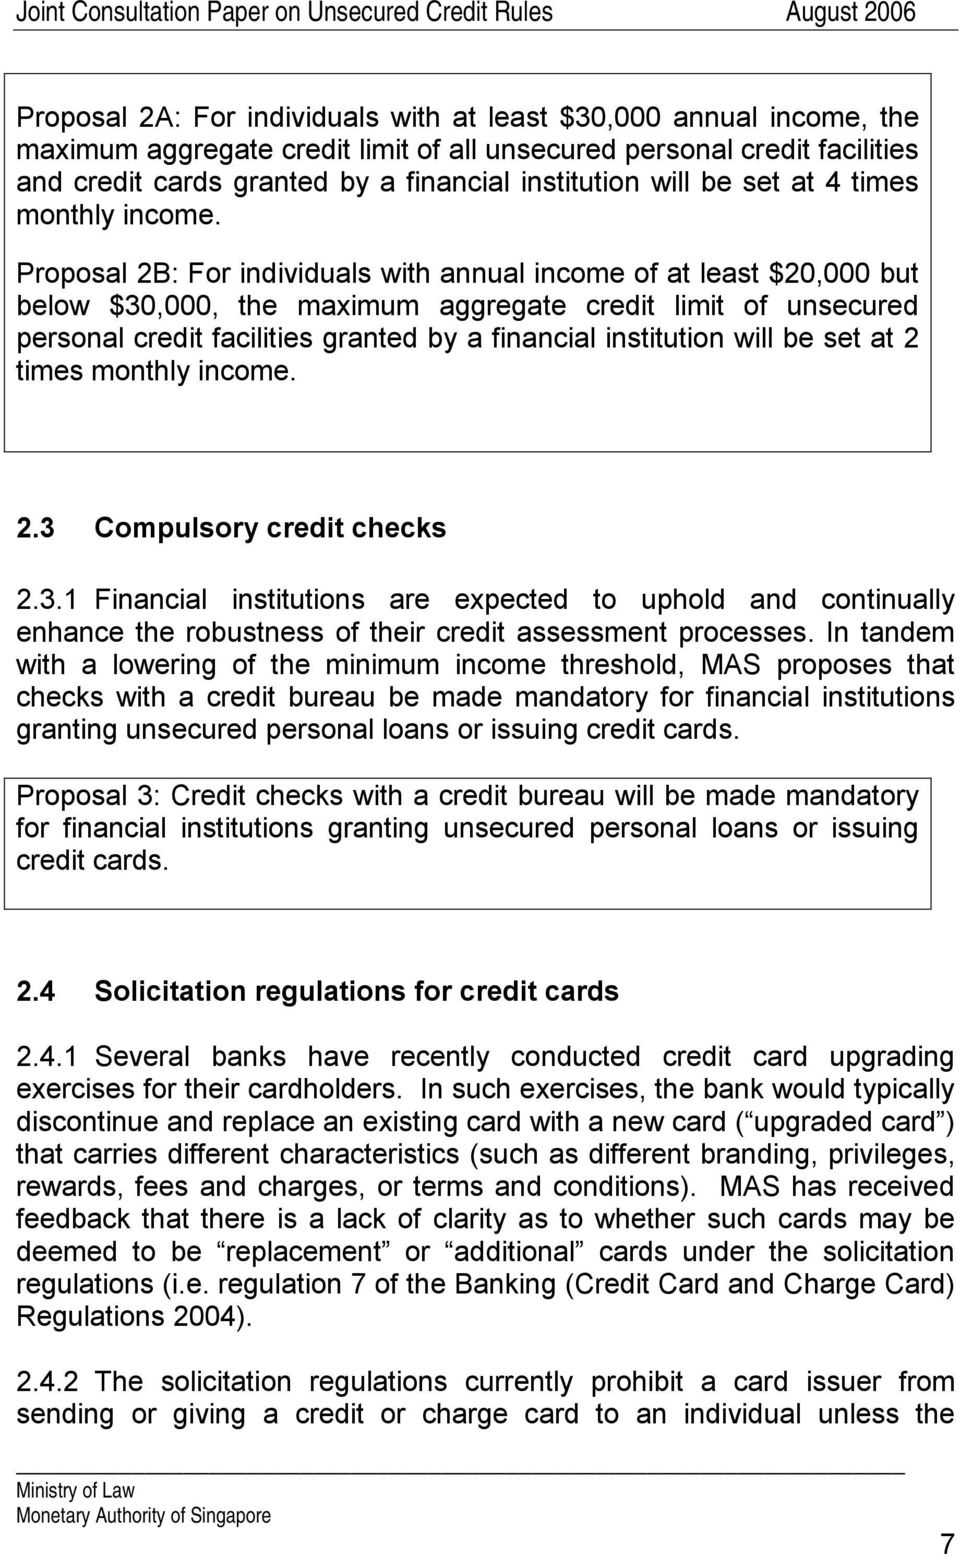 Proposal 2B: For individuals with annual income of at least $20,000 but below $30,000, the maximum aggregate credit limit of unsecured personal credit facilities granted by a financial institution